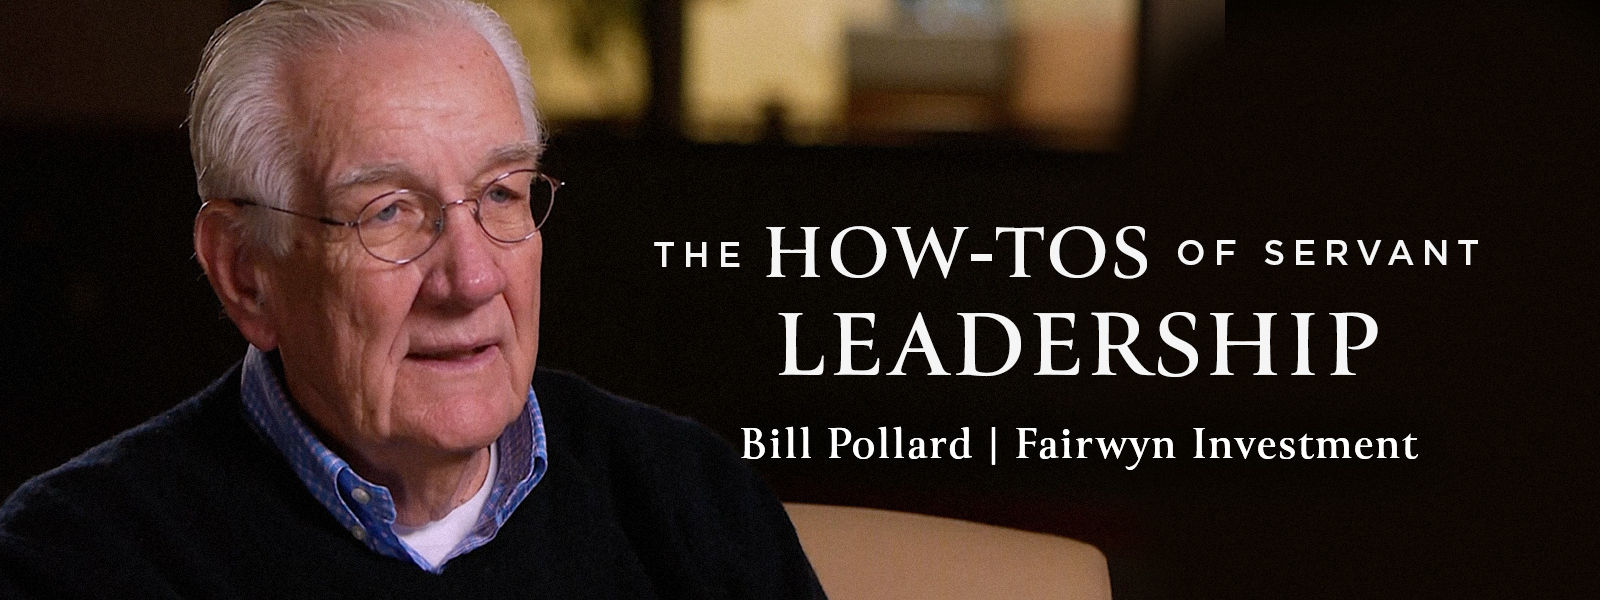 The How-Tos of Servant Leadership